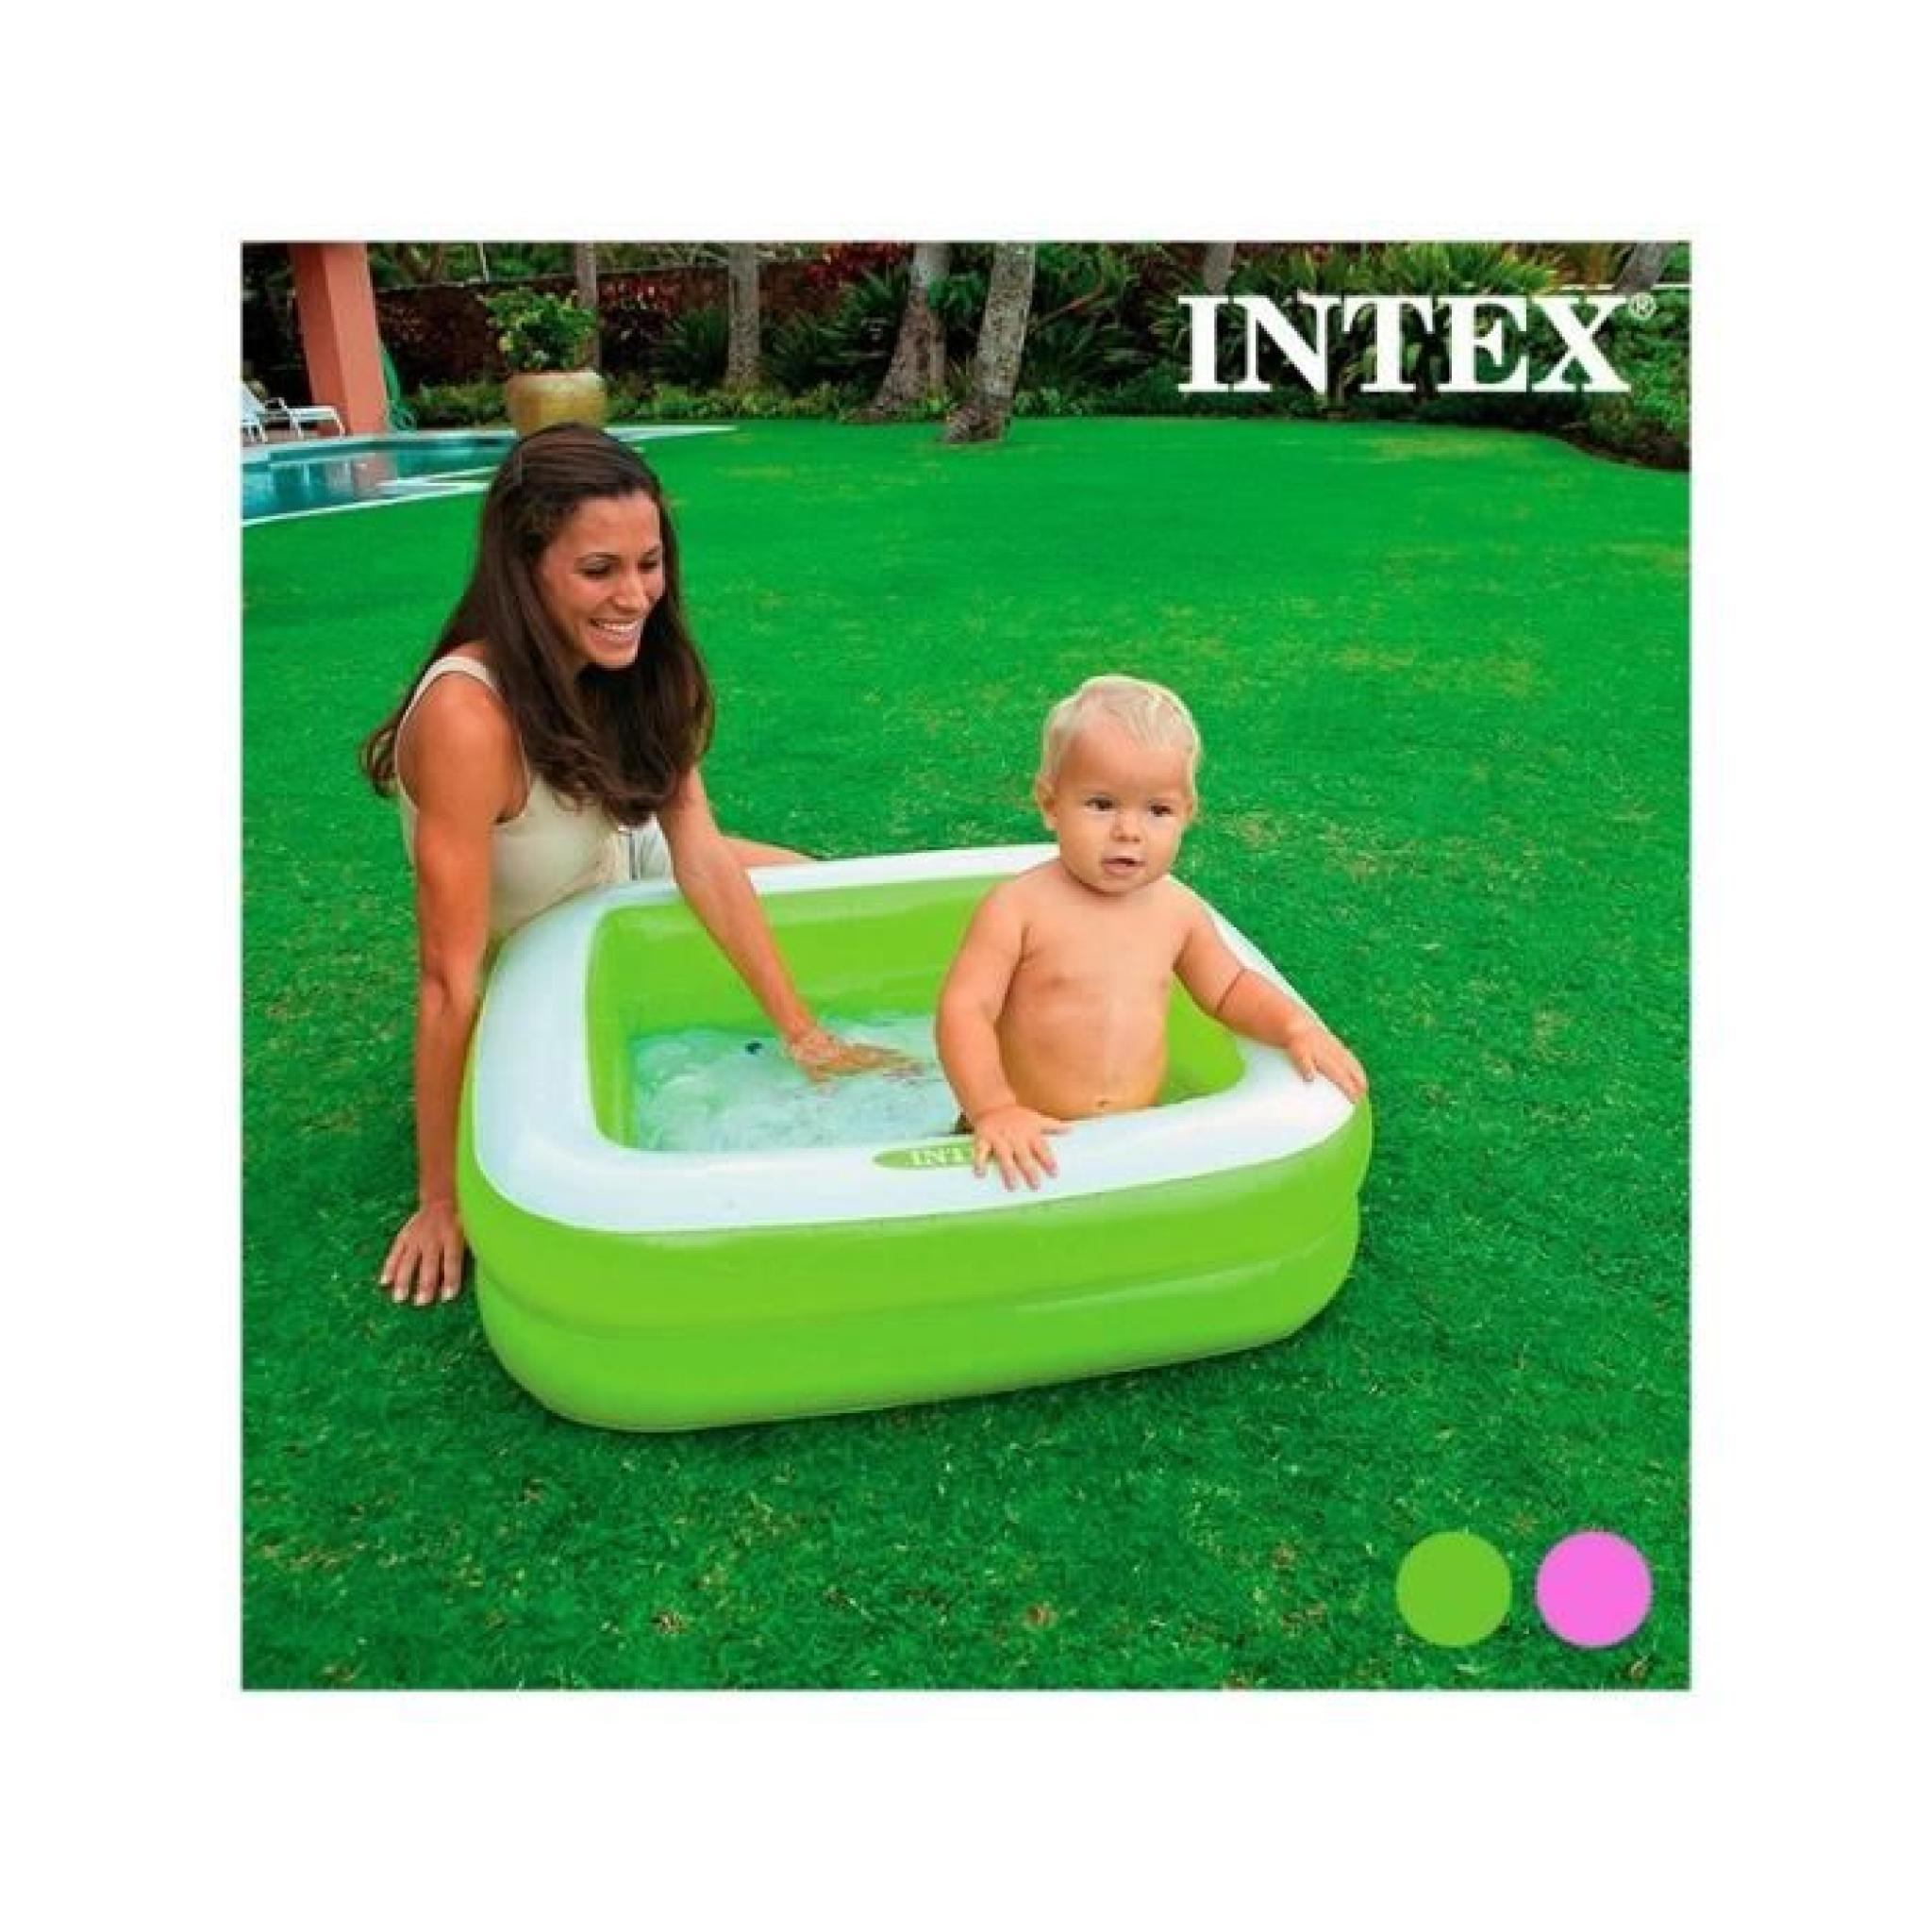 Piscine gonflable carr e pour enfants intex rose for Piscine carree intex